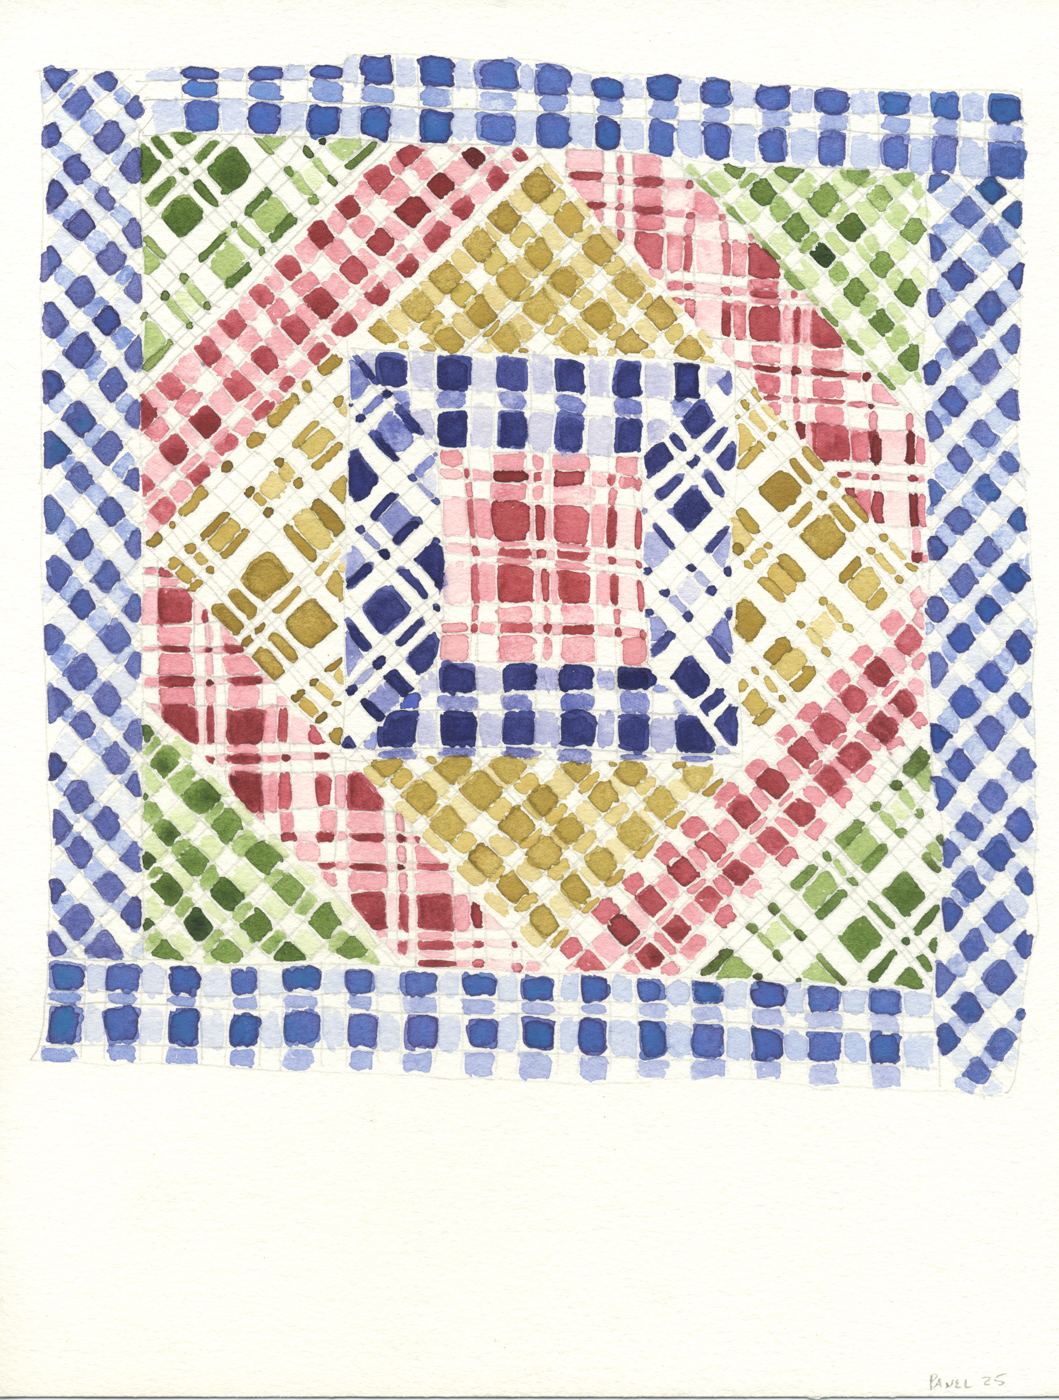 Cindy Bernard, Quilt (Gladys Osmond, Beaches, Newfoundland, 2013) from the Vinland series, Panel 25 of 123 panels, 2016, Watercolor, 11 x 8.5 inches